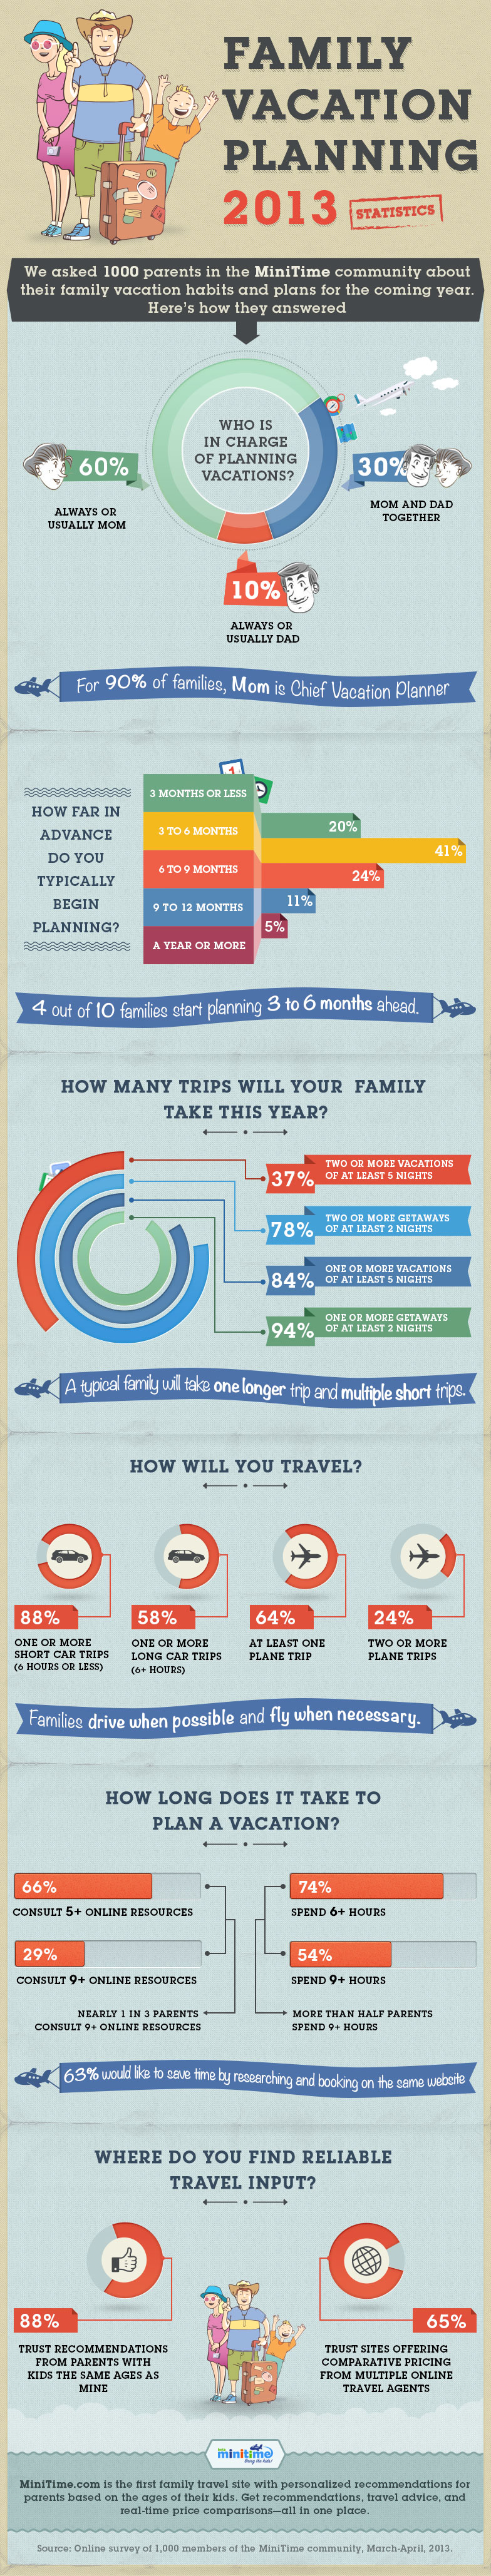 Vacation Planning and Travel Statistics 38 Best Catchy Resort Slogans and Creative Taglines